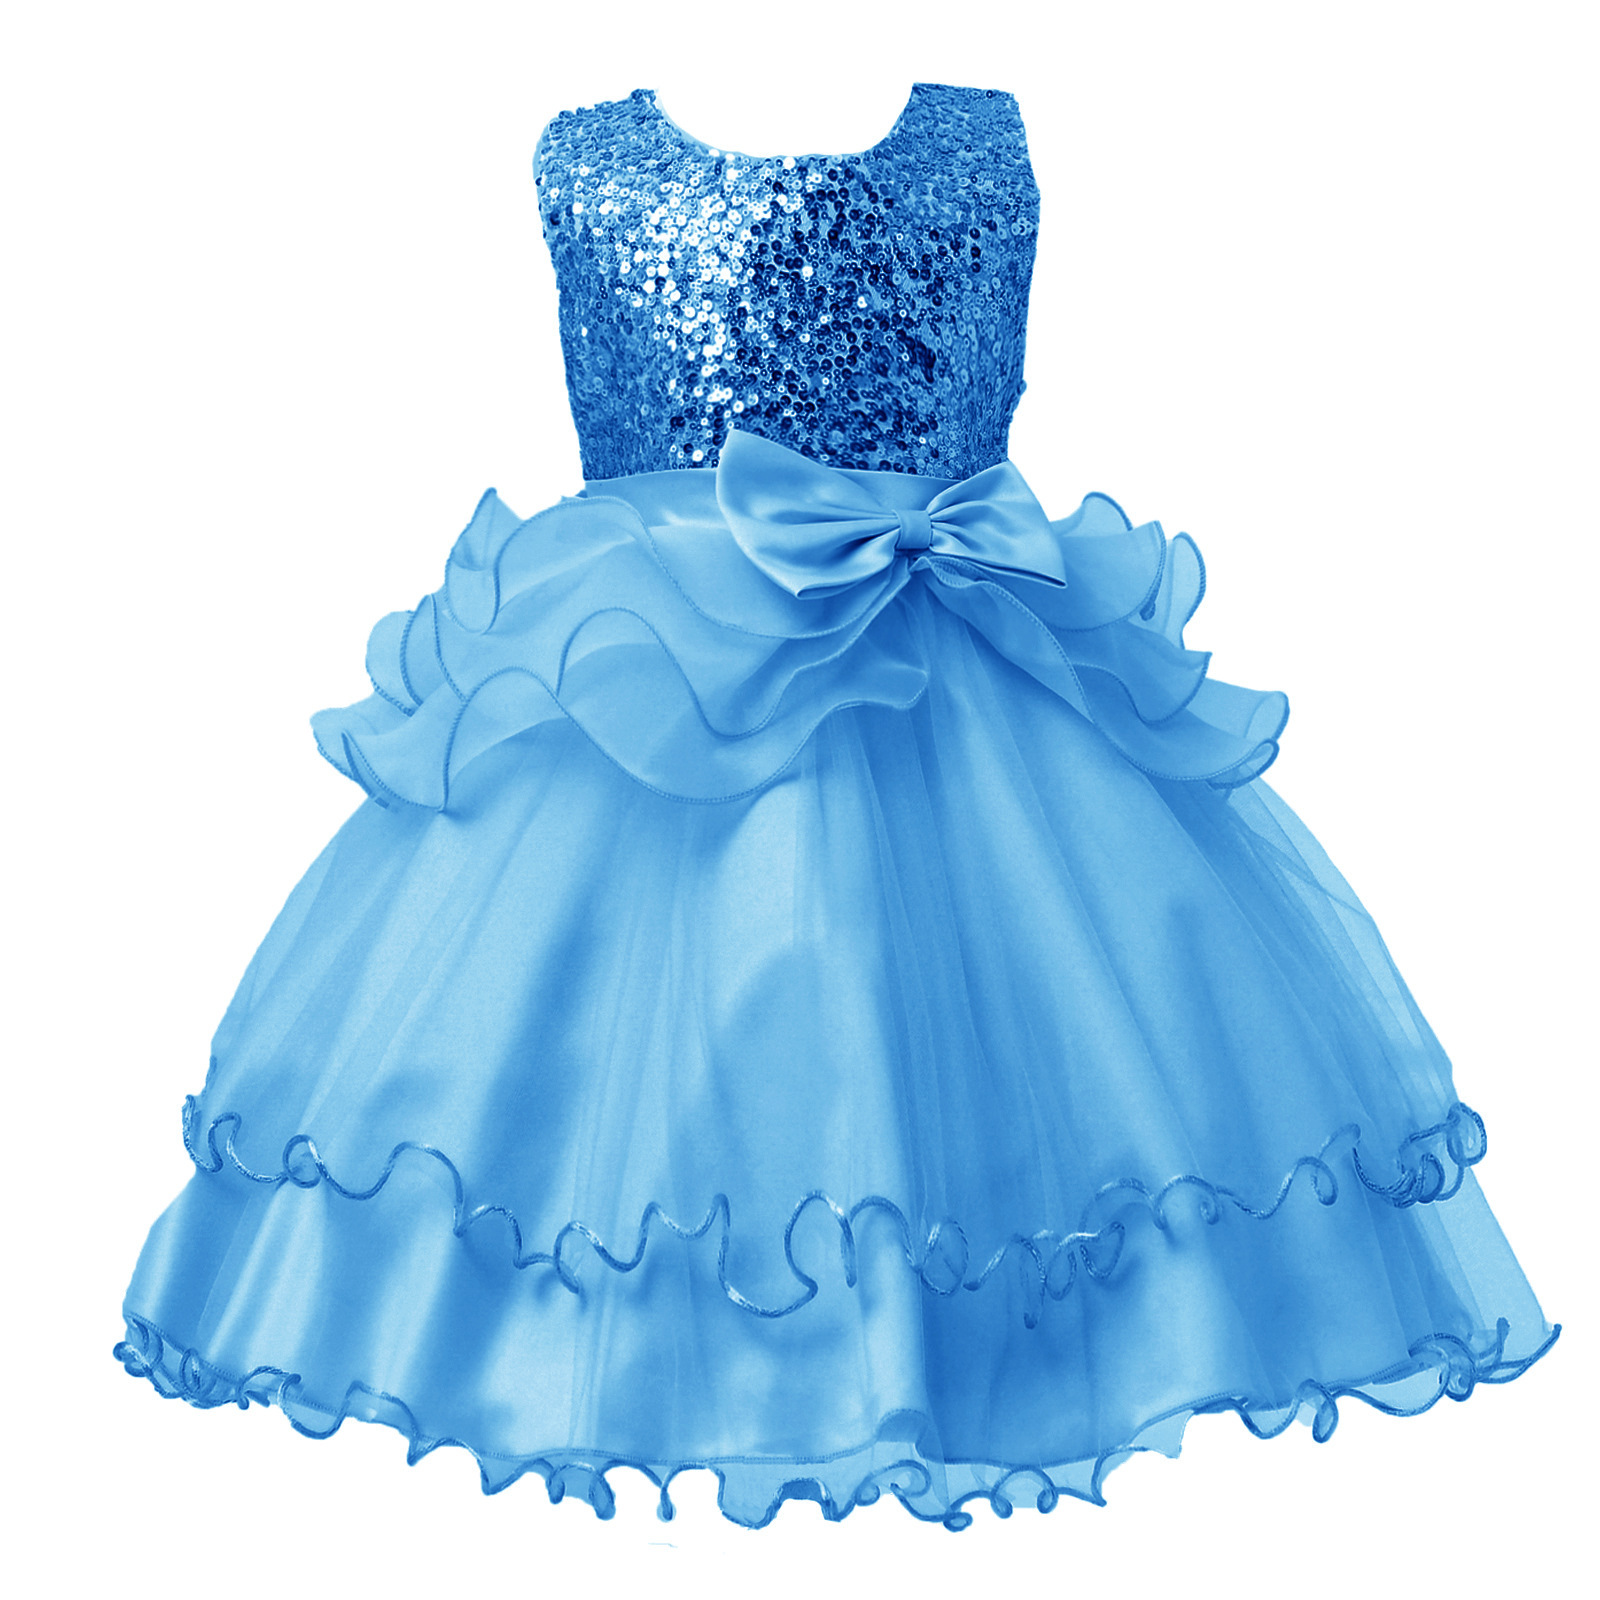 2017 New Spring Children Dress Sequins Princess Bow Wedding Flower Girl Birthday For Girls Dresses 3